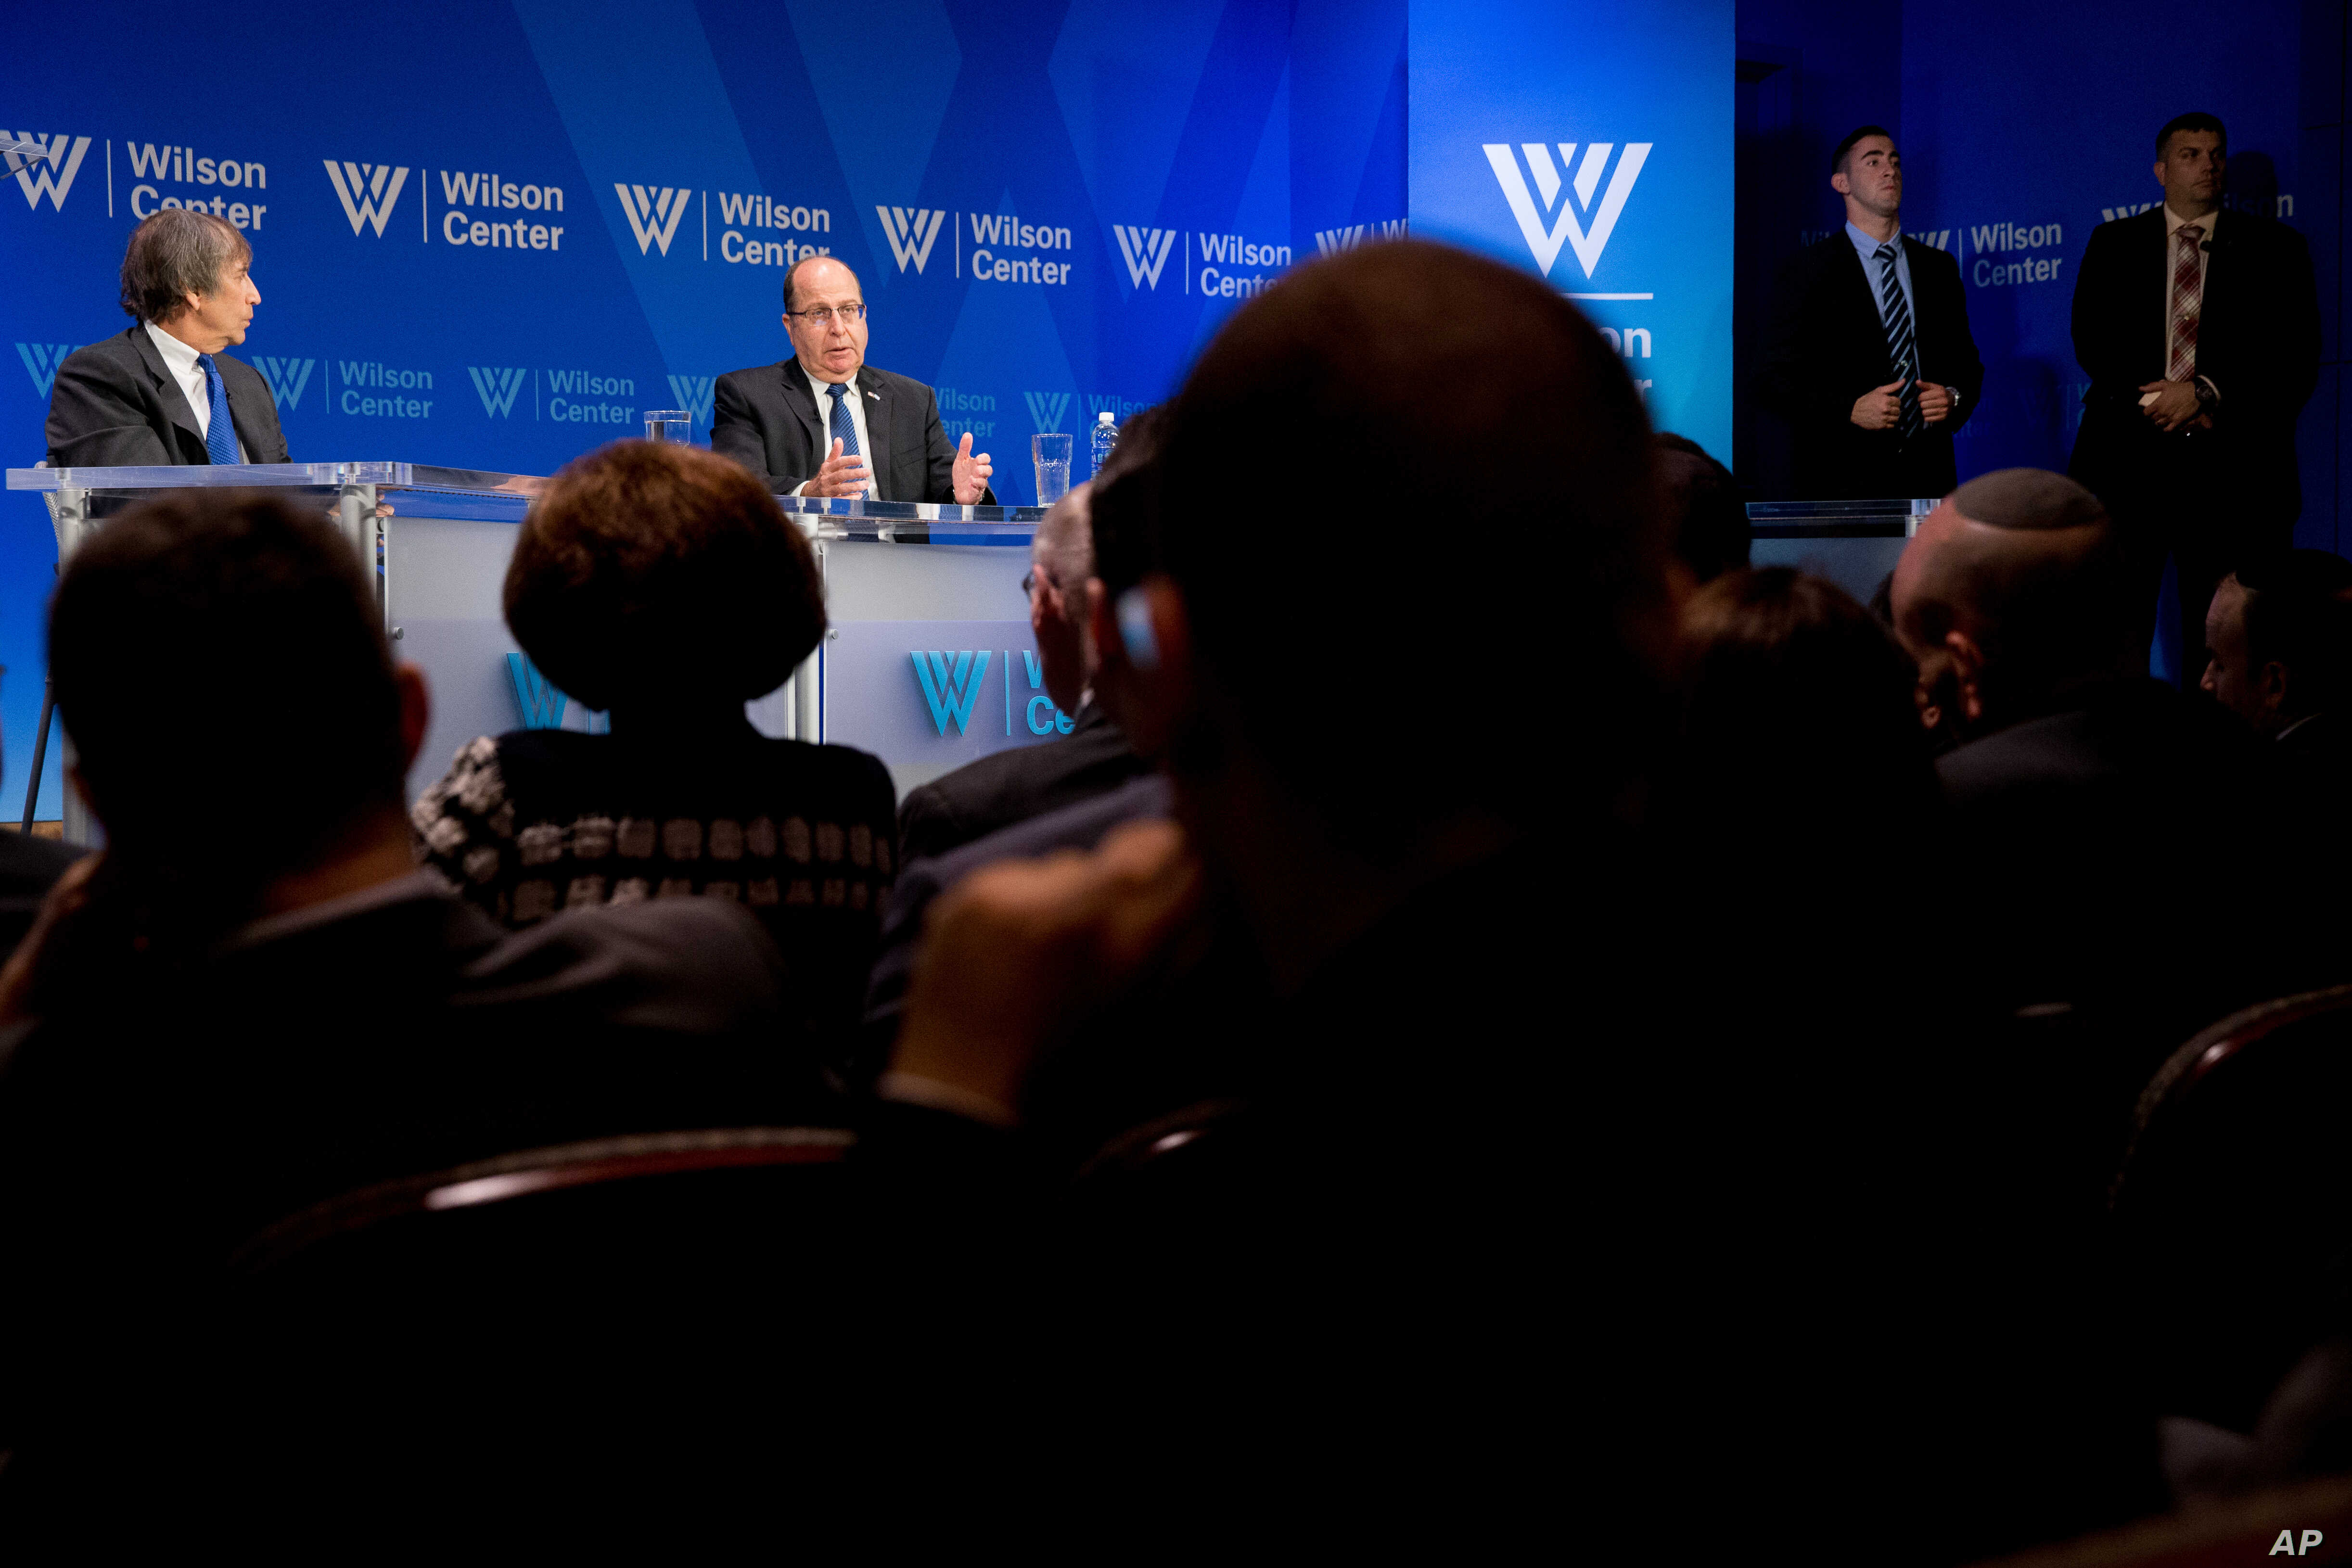 FILE - Wilson Center Vice President for New Initiatives and Distinguished Fellow Aaron David Miller, left, speaks with Israeli Defense Minister Moshe Ya'alon at the Wilson Center, in Washington, Monday, March 14, 2016.